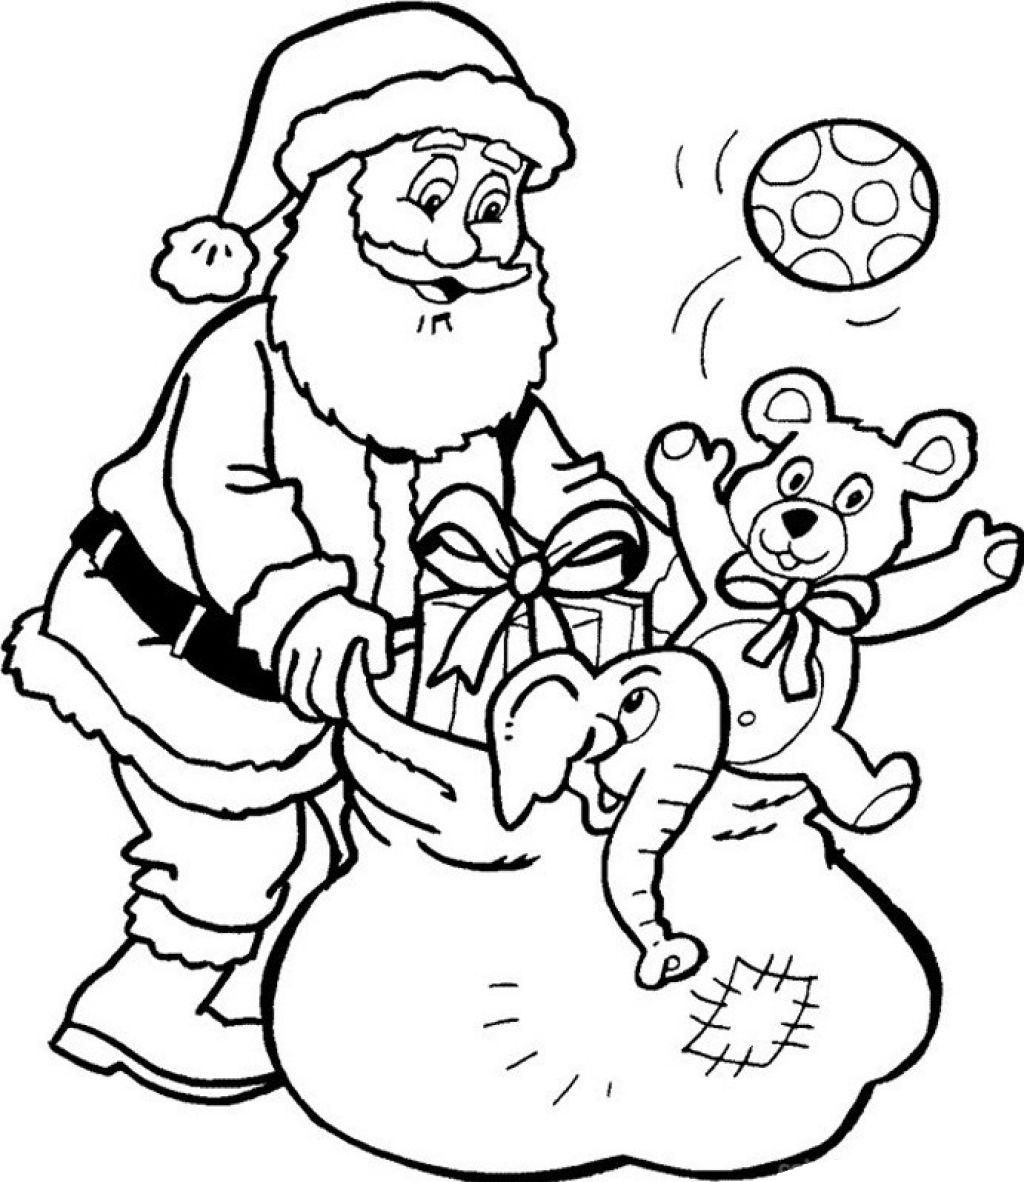 Santa Claus Face With No Beard Coloring Page - Coloring Home